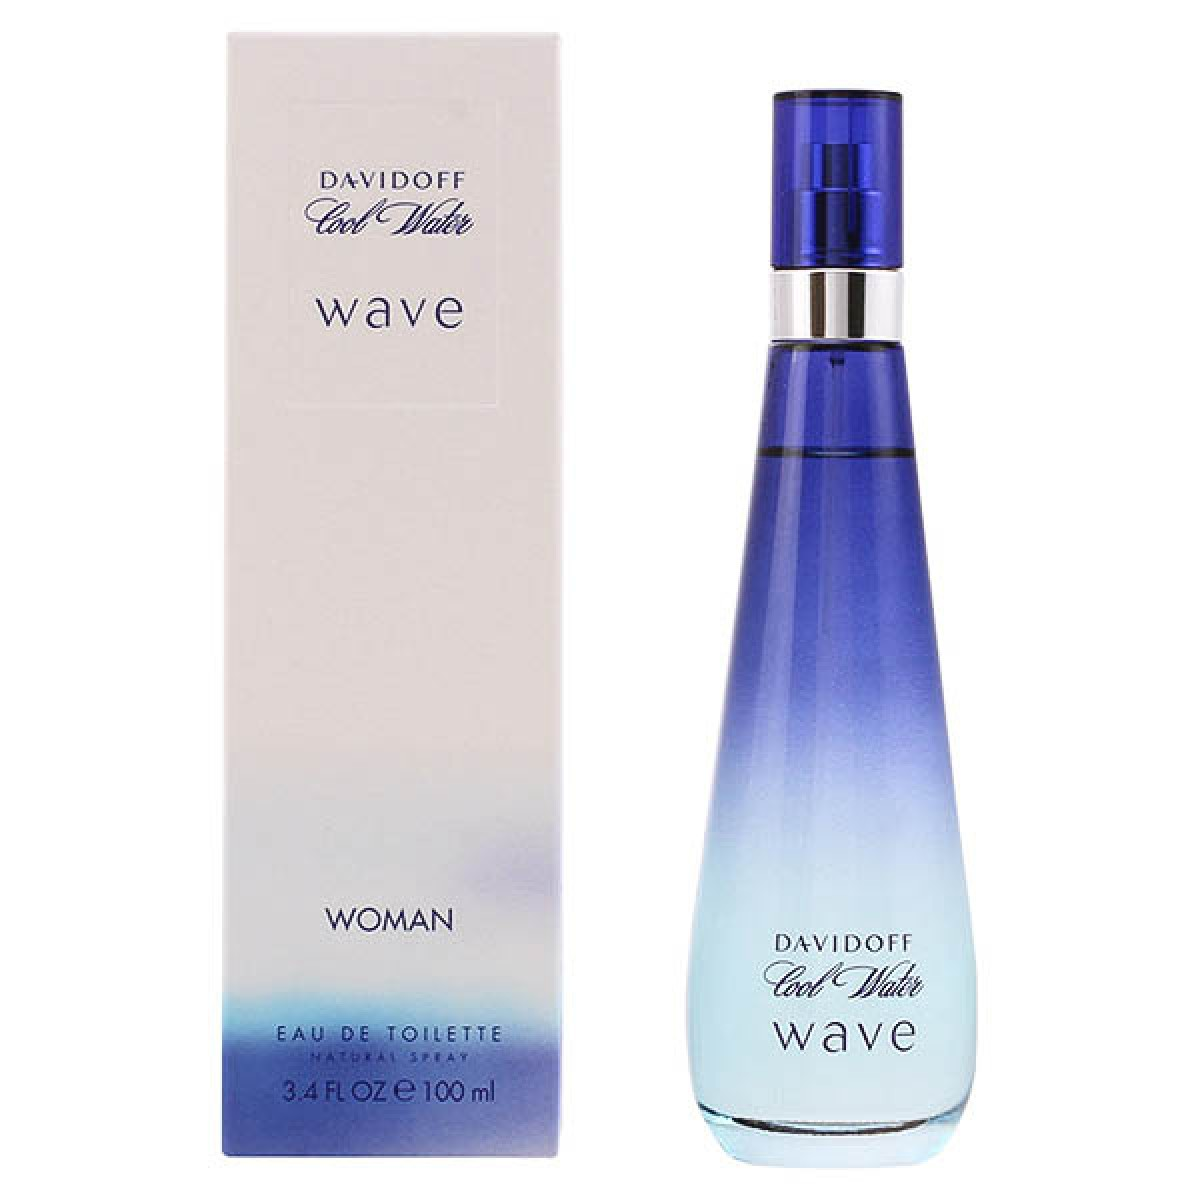 Feminin Spray Cool Water Wave Davidoff STOCK 13210 EDT EDT - Kapacitet: 125 ml